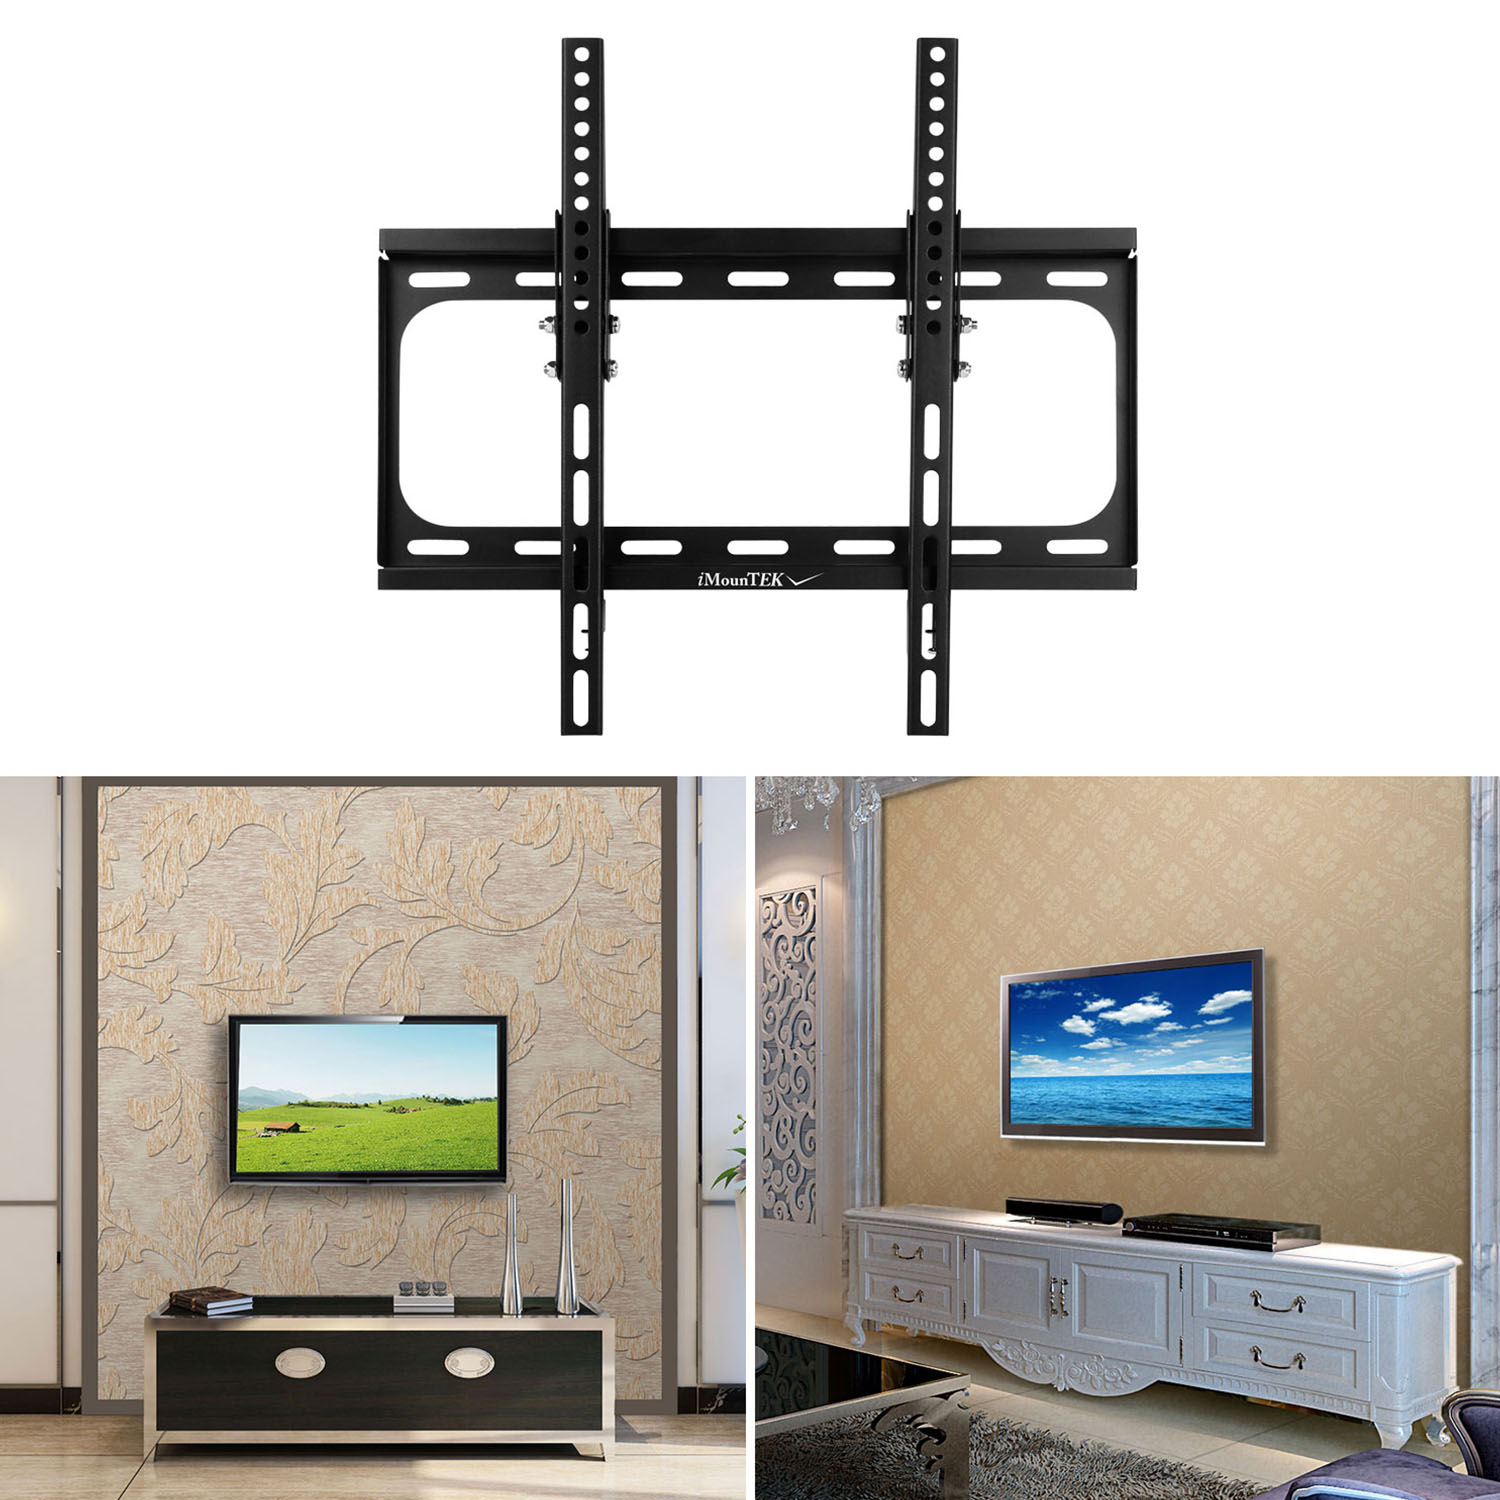 "iMounTEK Tilting TV Wall Mount Bracket For 32"" TO 55"" LED/LCD/OLED/Plasma Flat Screen TV. Full Motion Articulating Dual Arms, 88 LBS Hold- Sony/LG/Samsung/Panasonic/Vizio/Toshiba"